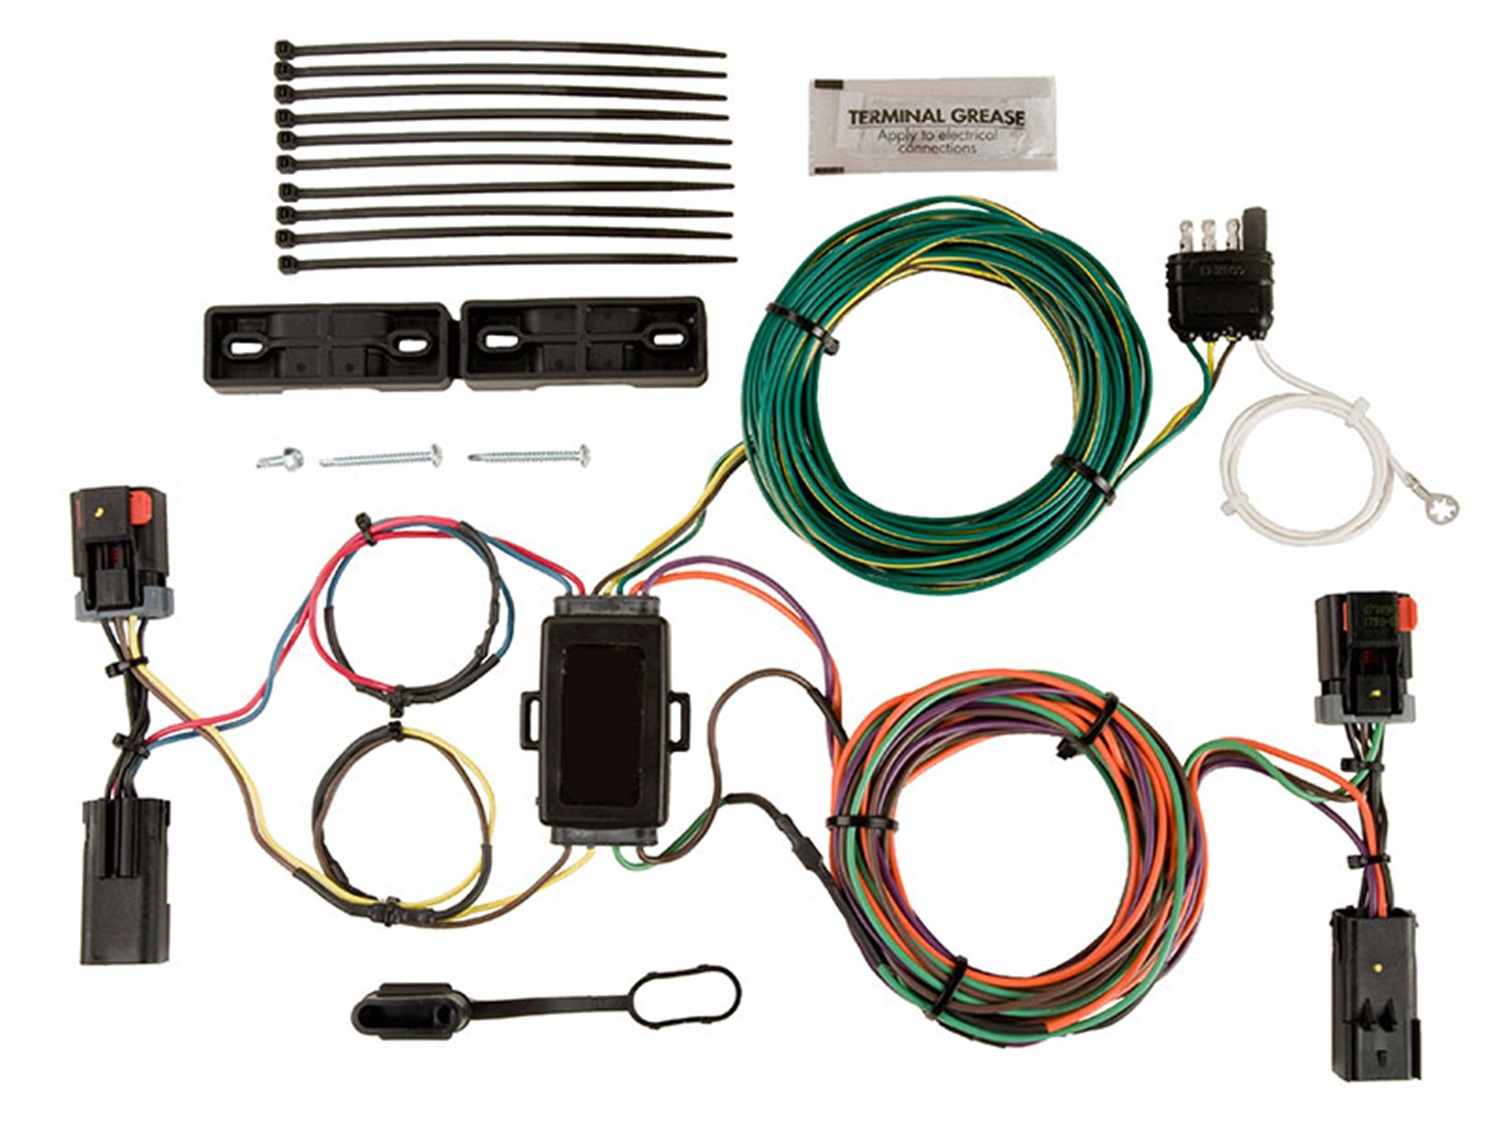 blue ox bx88283 ez light wiring harness kit for dodge libertyblue ox bx88283 ez light wiring harness kit for dodge liberty walmart com